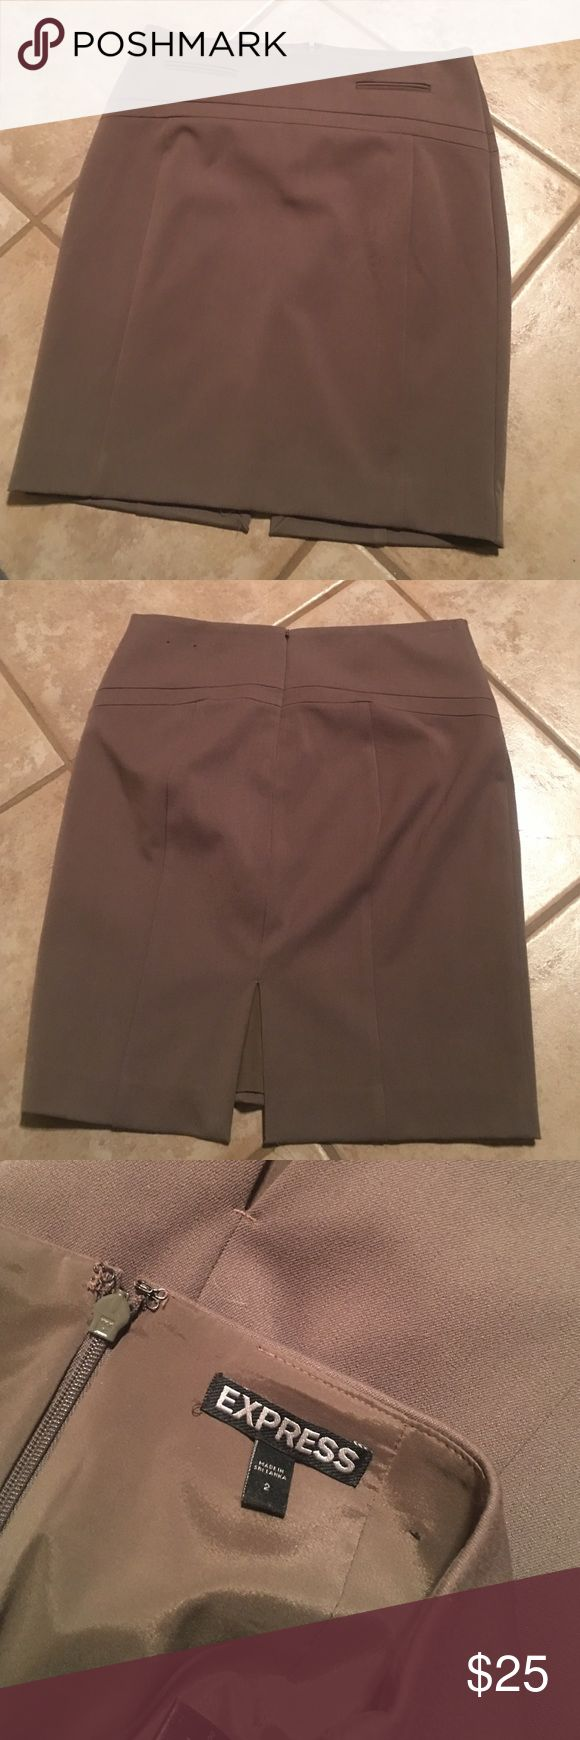 Express pencil skirt Tan pencil skirt with lining. Excellent condition! Express Skirts Pencil